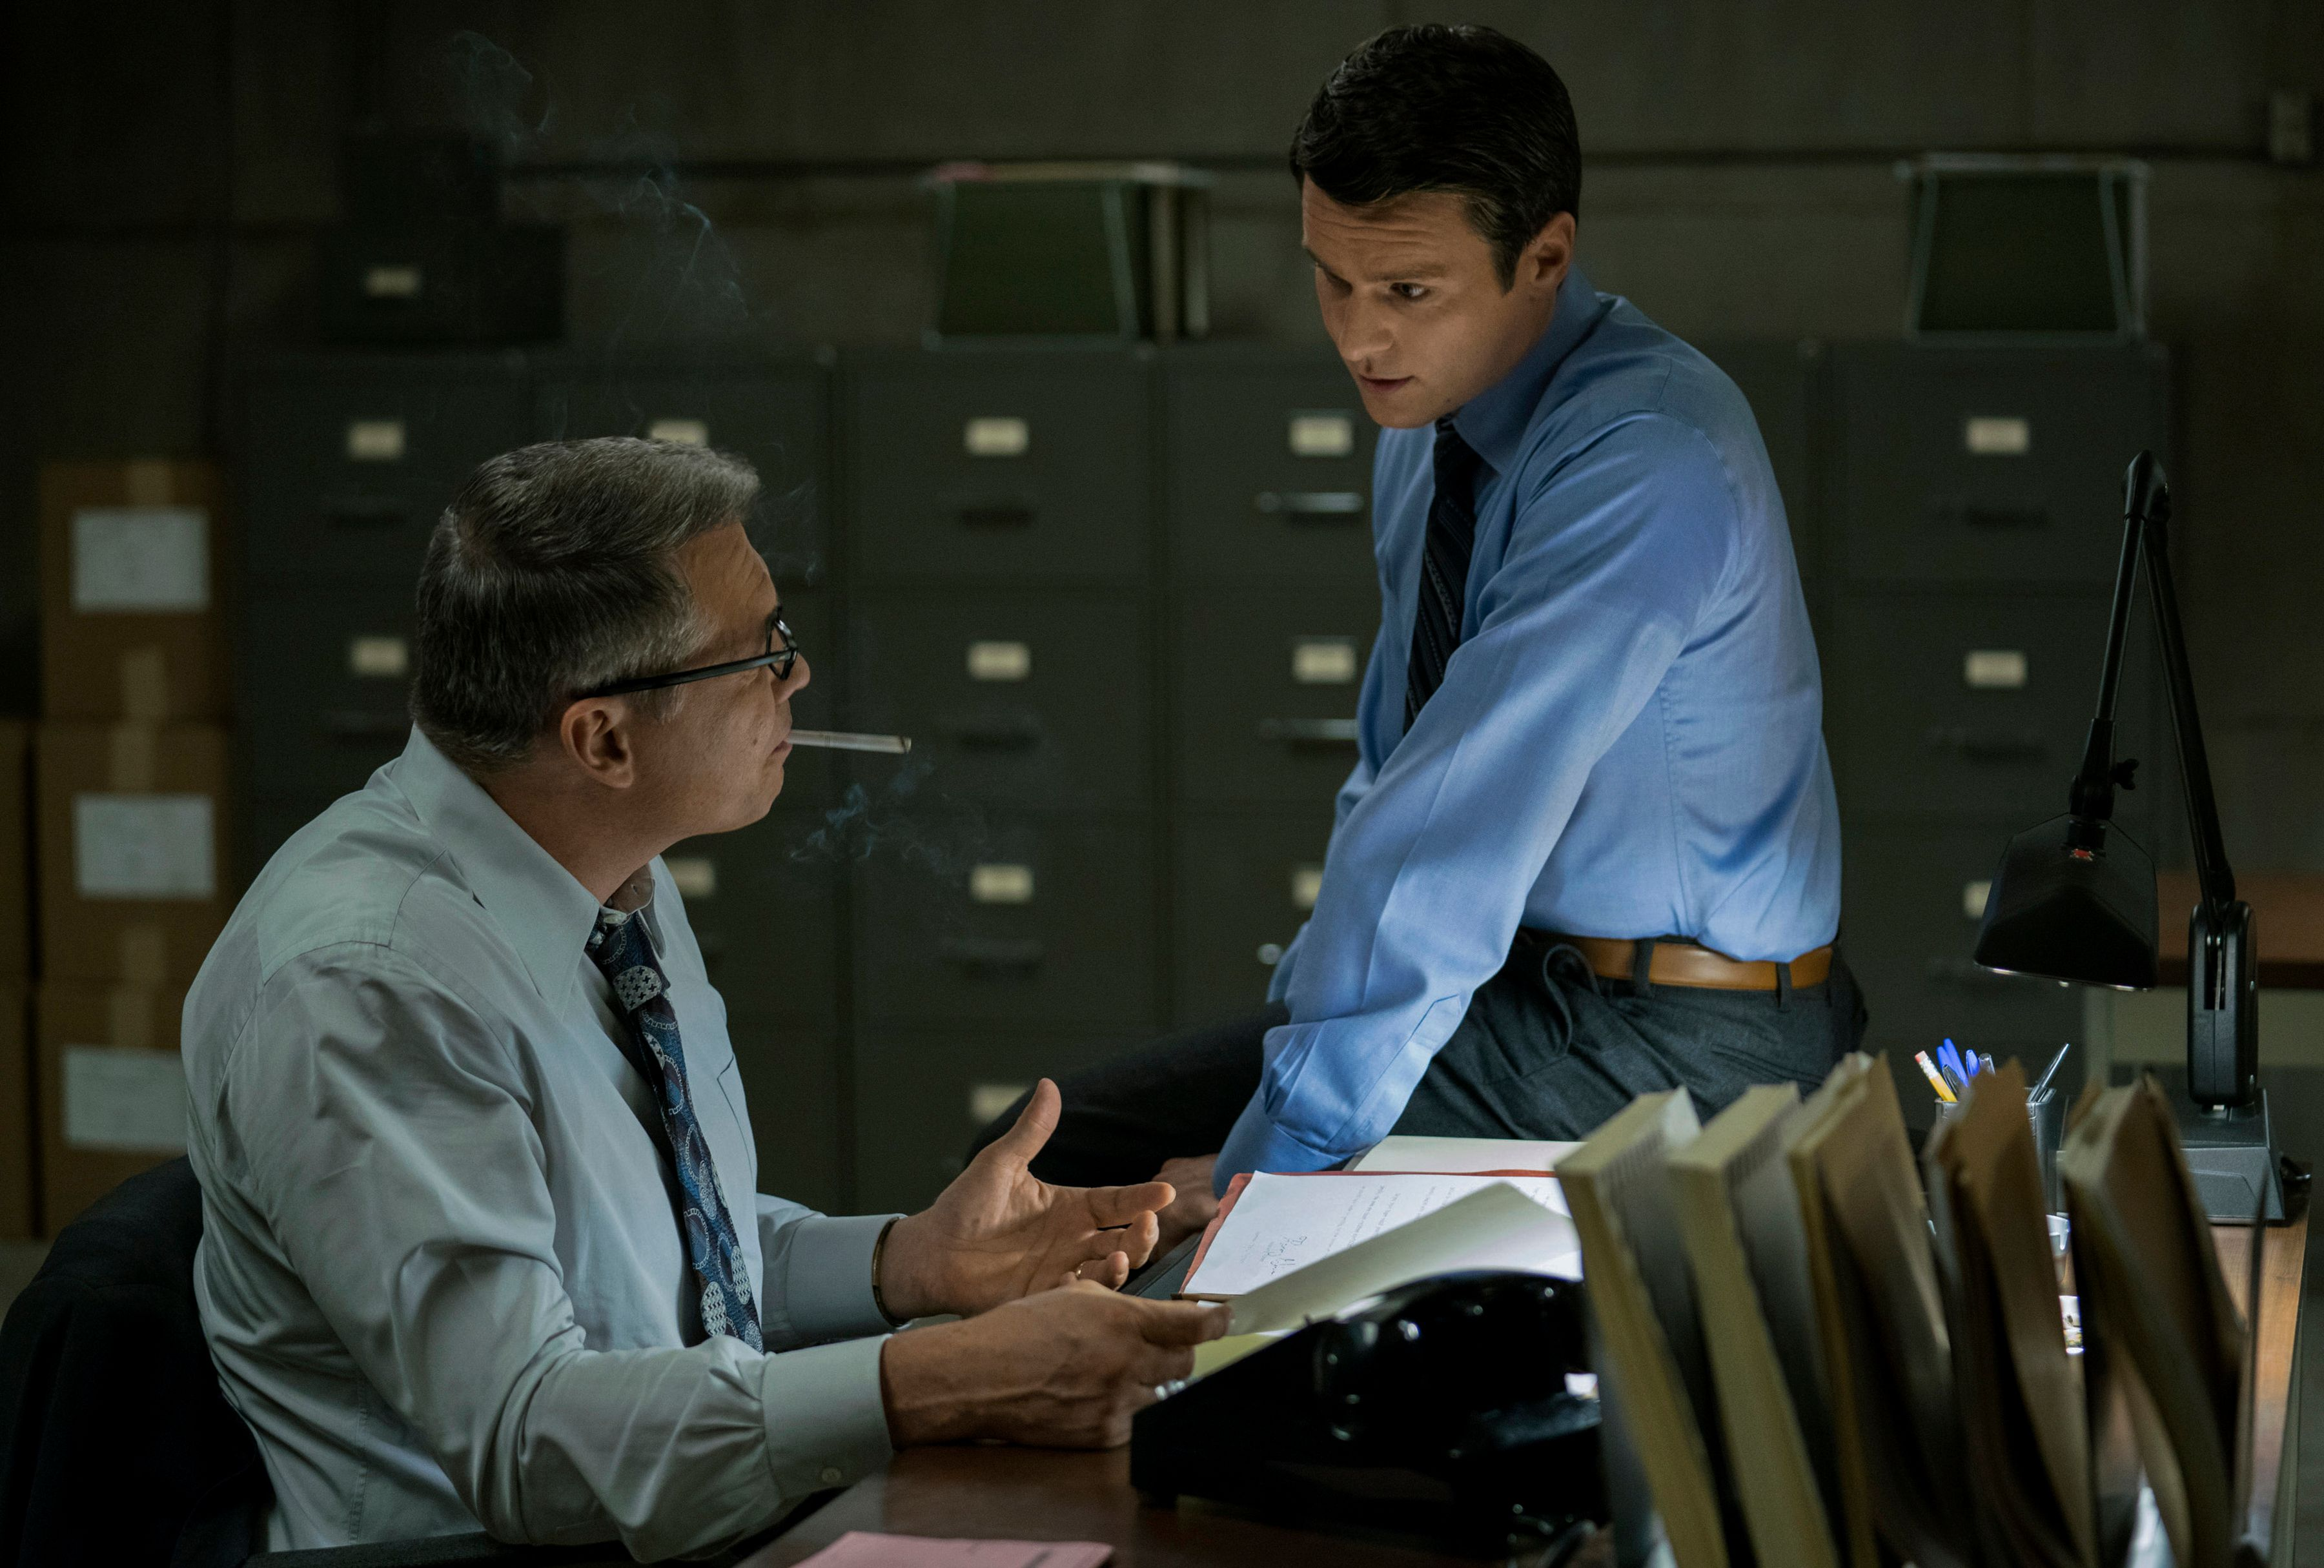 Odds & Ends: Mindhunter, Starring Jonathan Groff, Renewed for Second Season & More